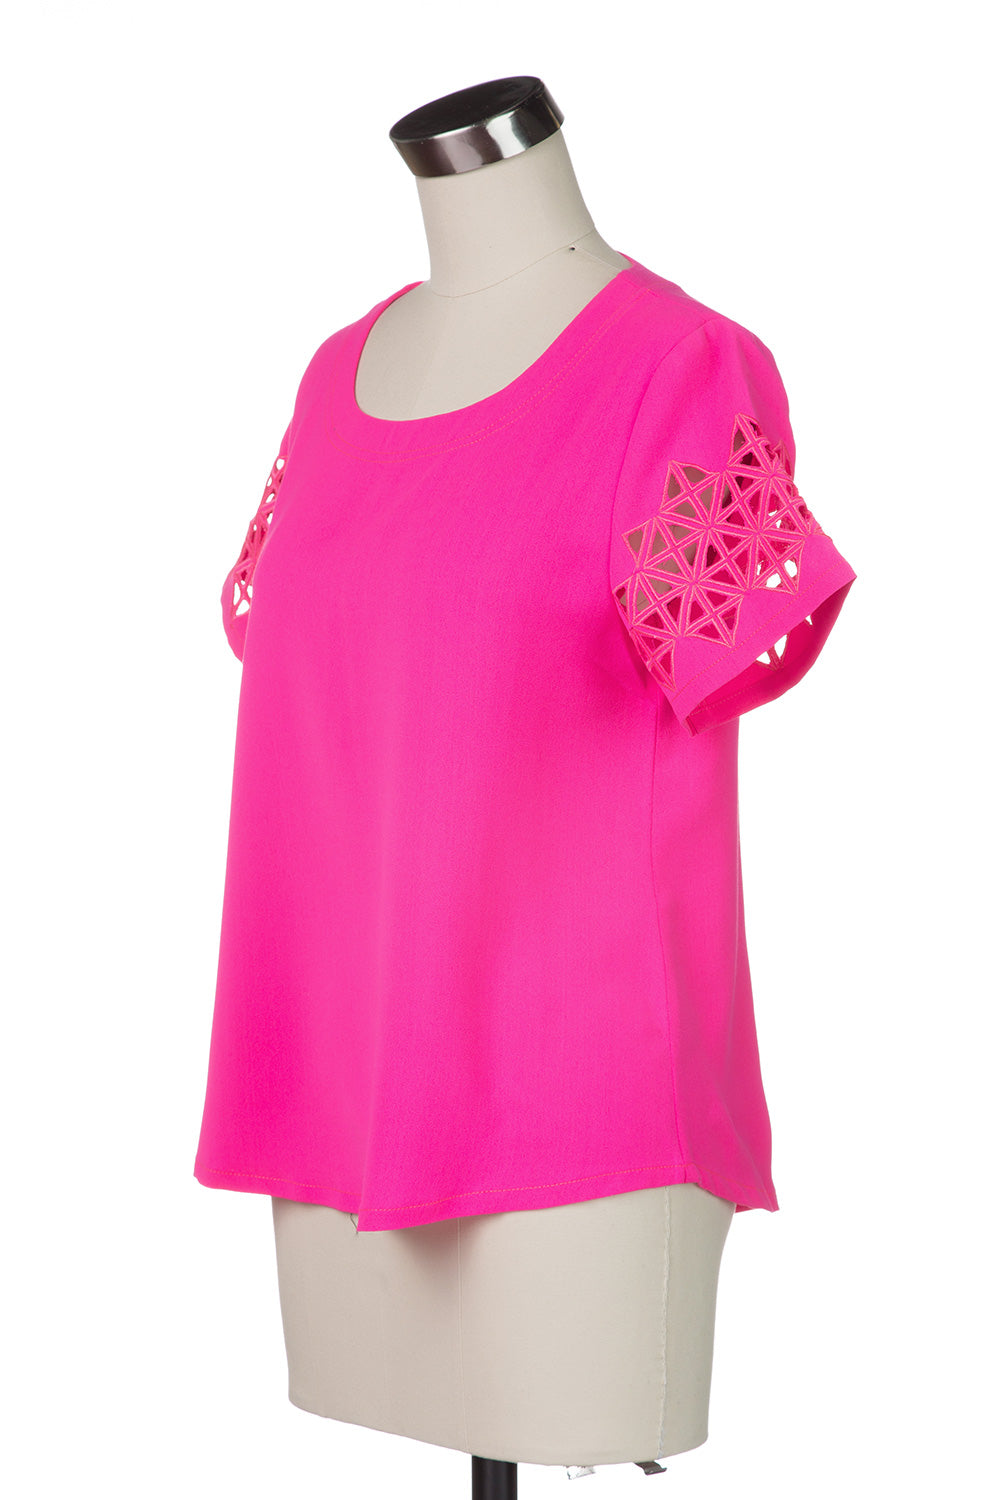 Type 4 Cut it Out Top in Neon Pink